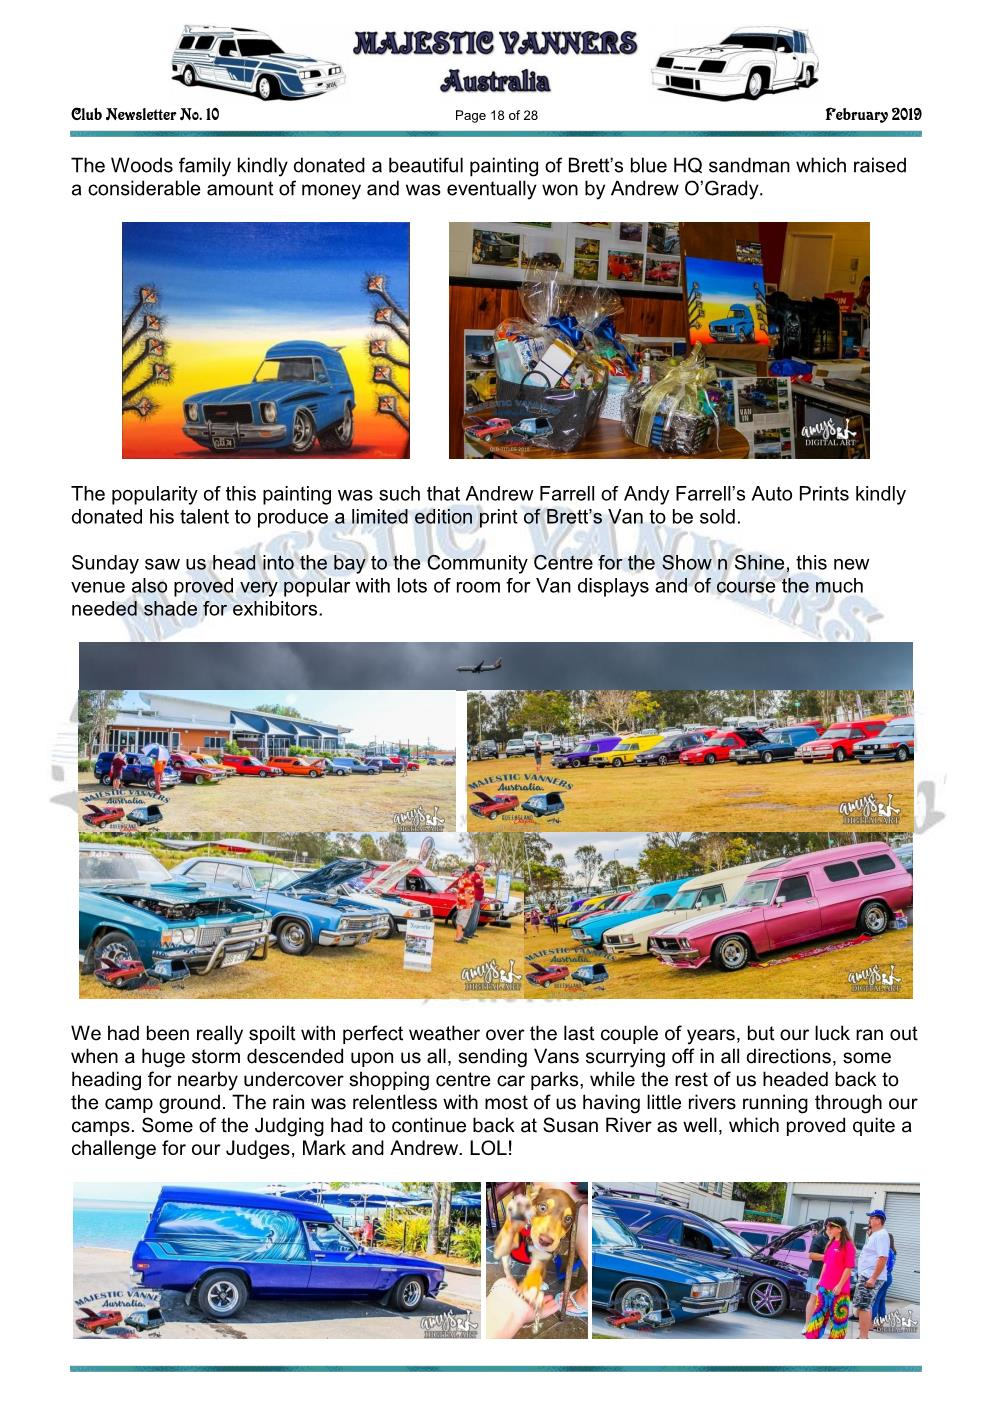 MAJESTIC VANNERS Newsletter Issue No: 10 February 2019 Mv_new27